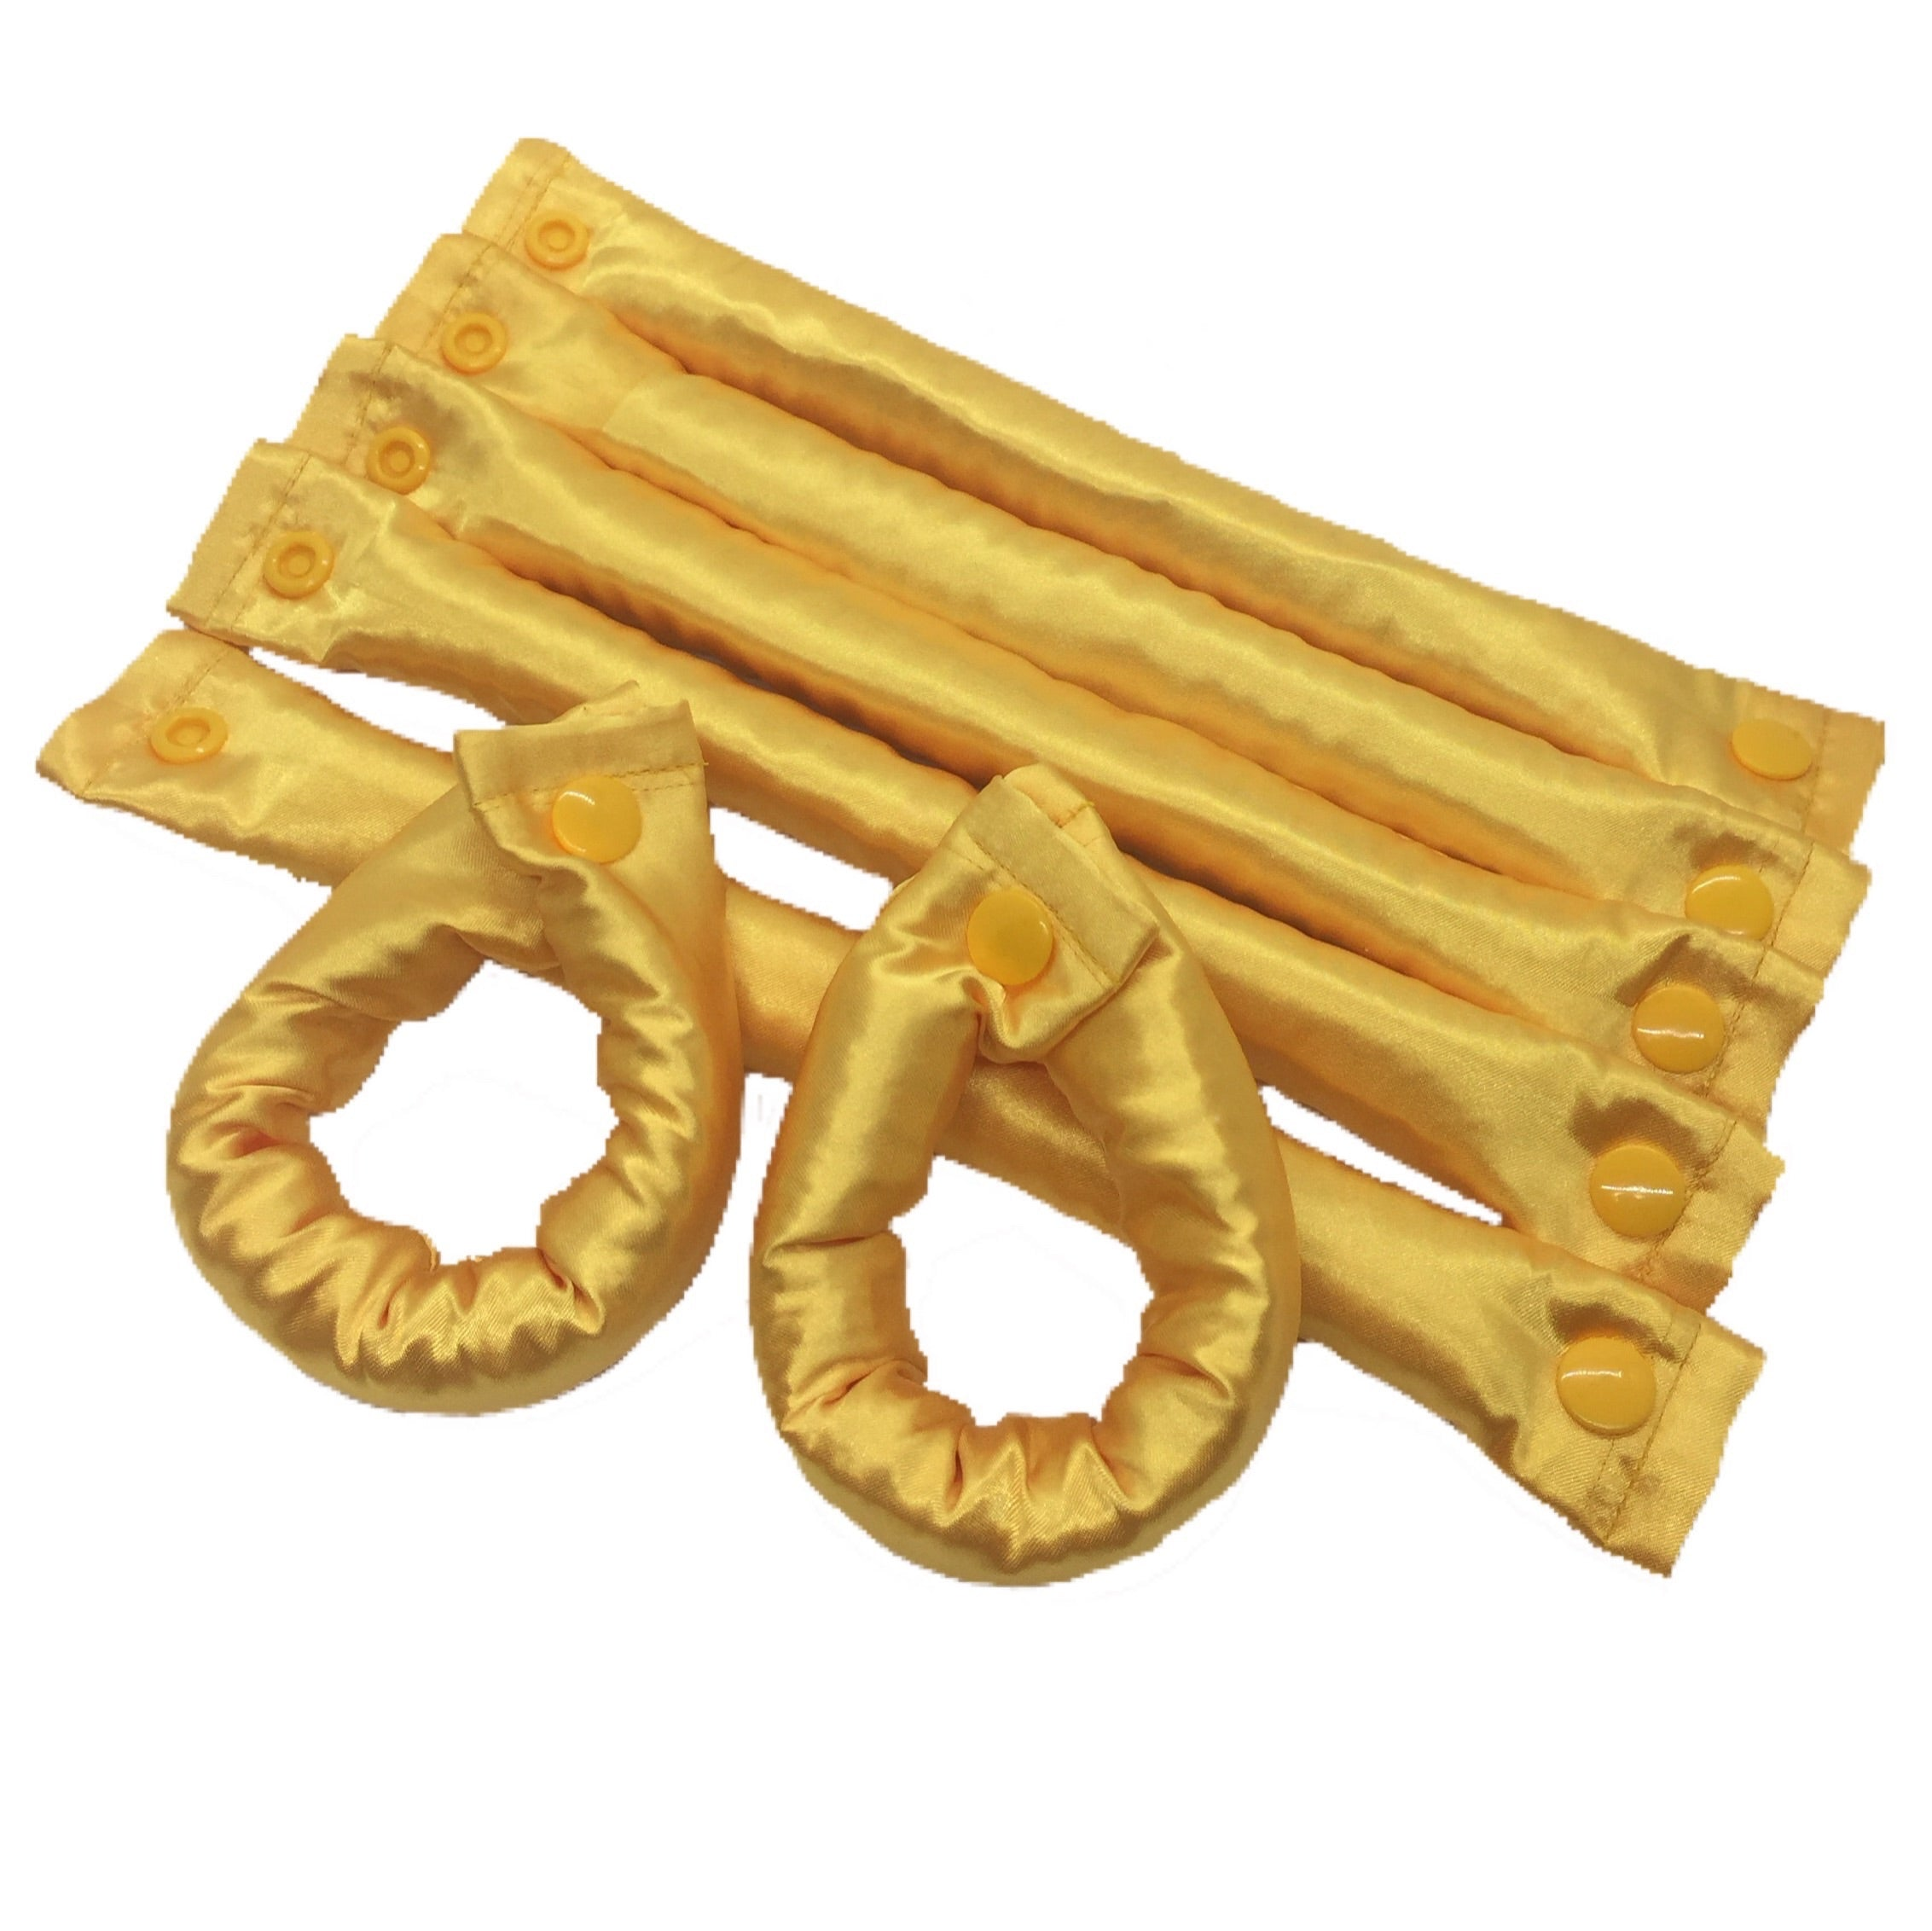 Yellow/Gold Satin Hair Rollers - Fabric Hair Accessory - My Easy Curls